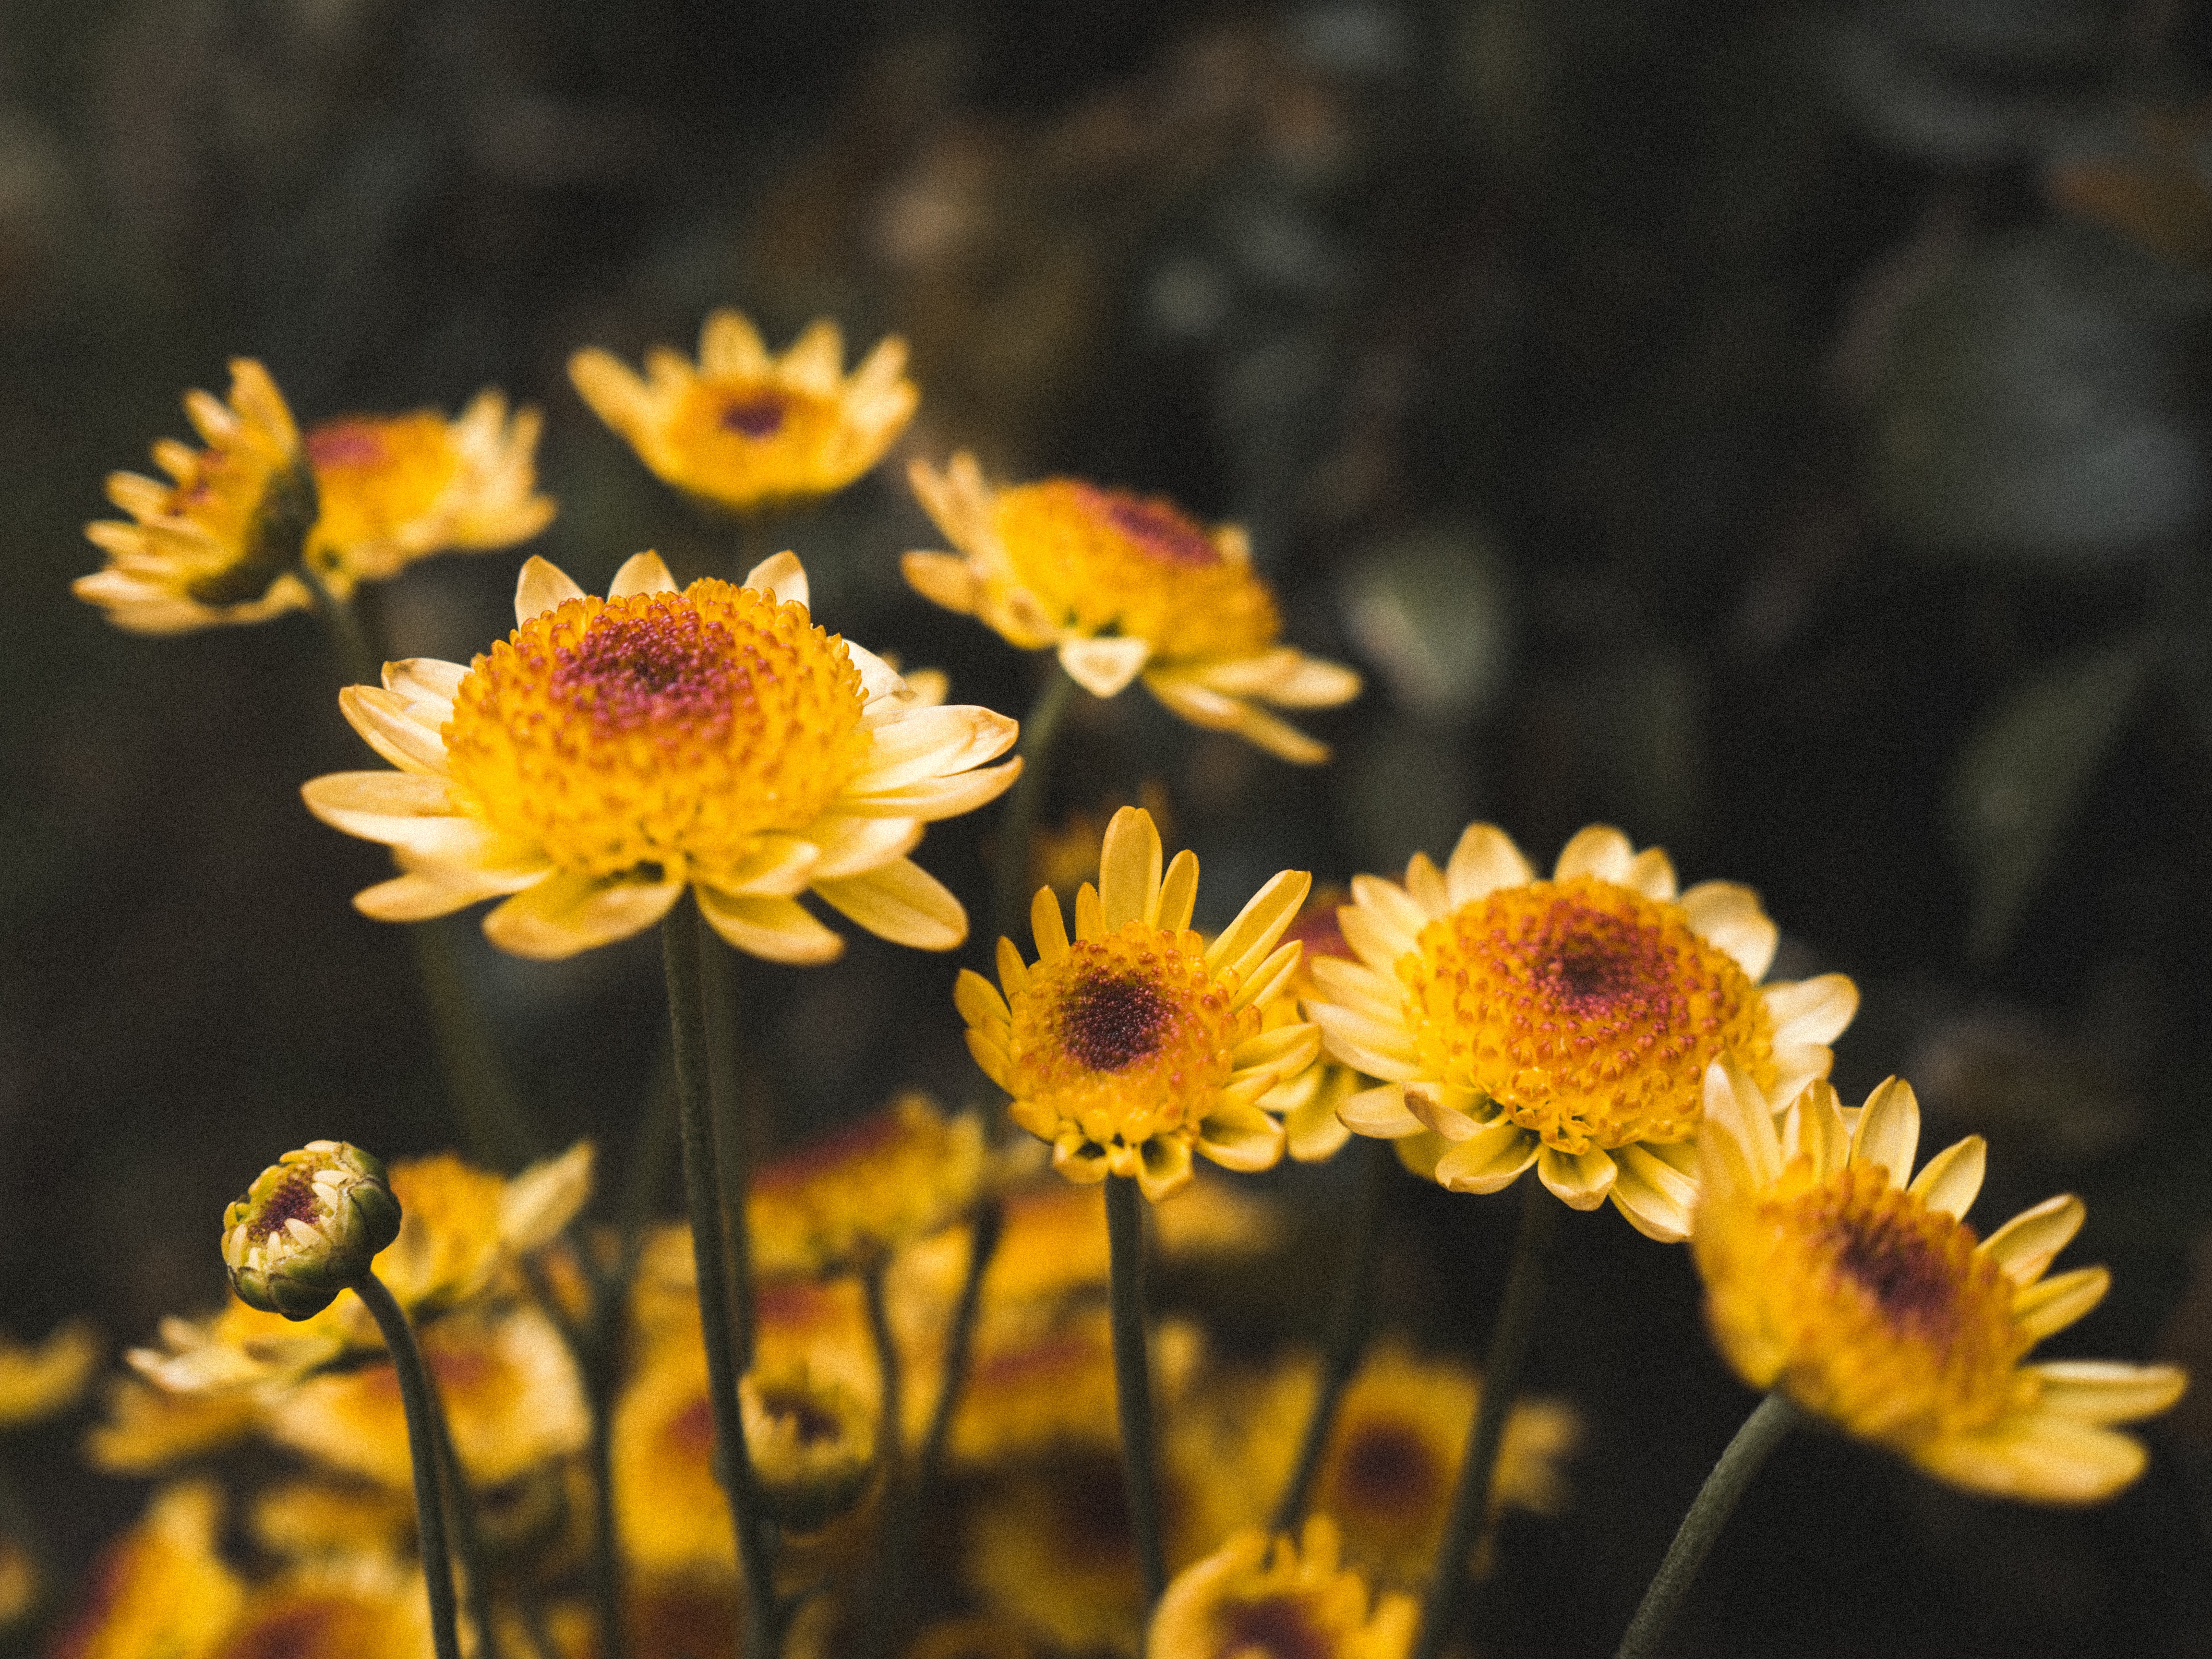 yellow petaled flowers in closeup photography